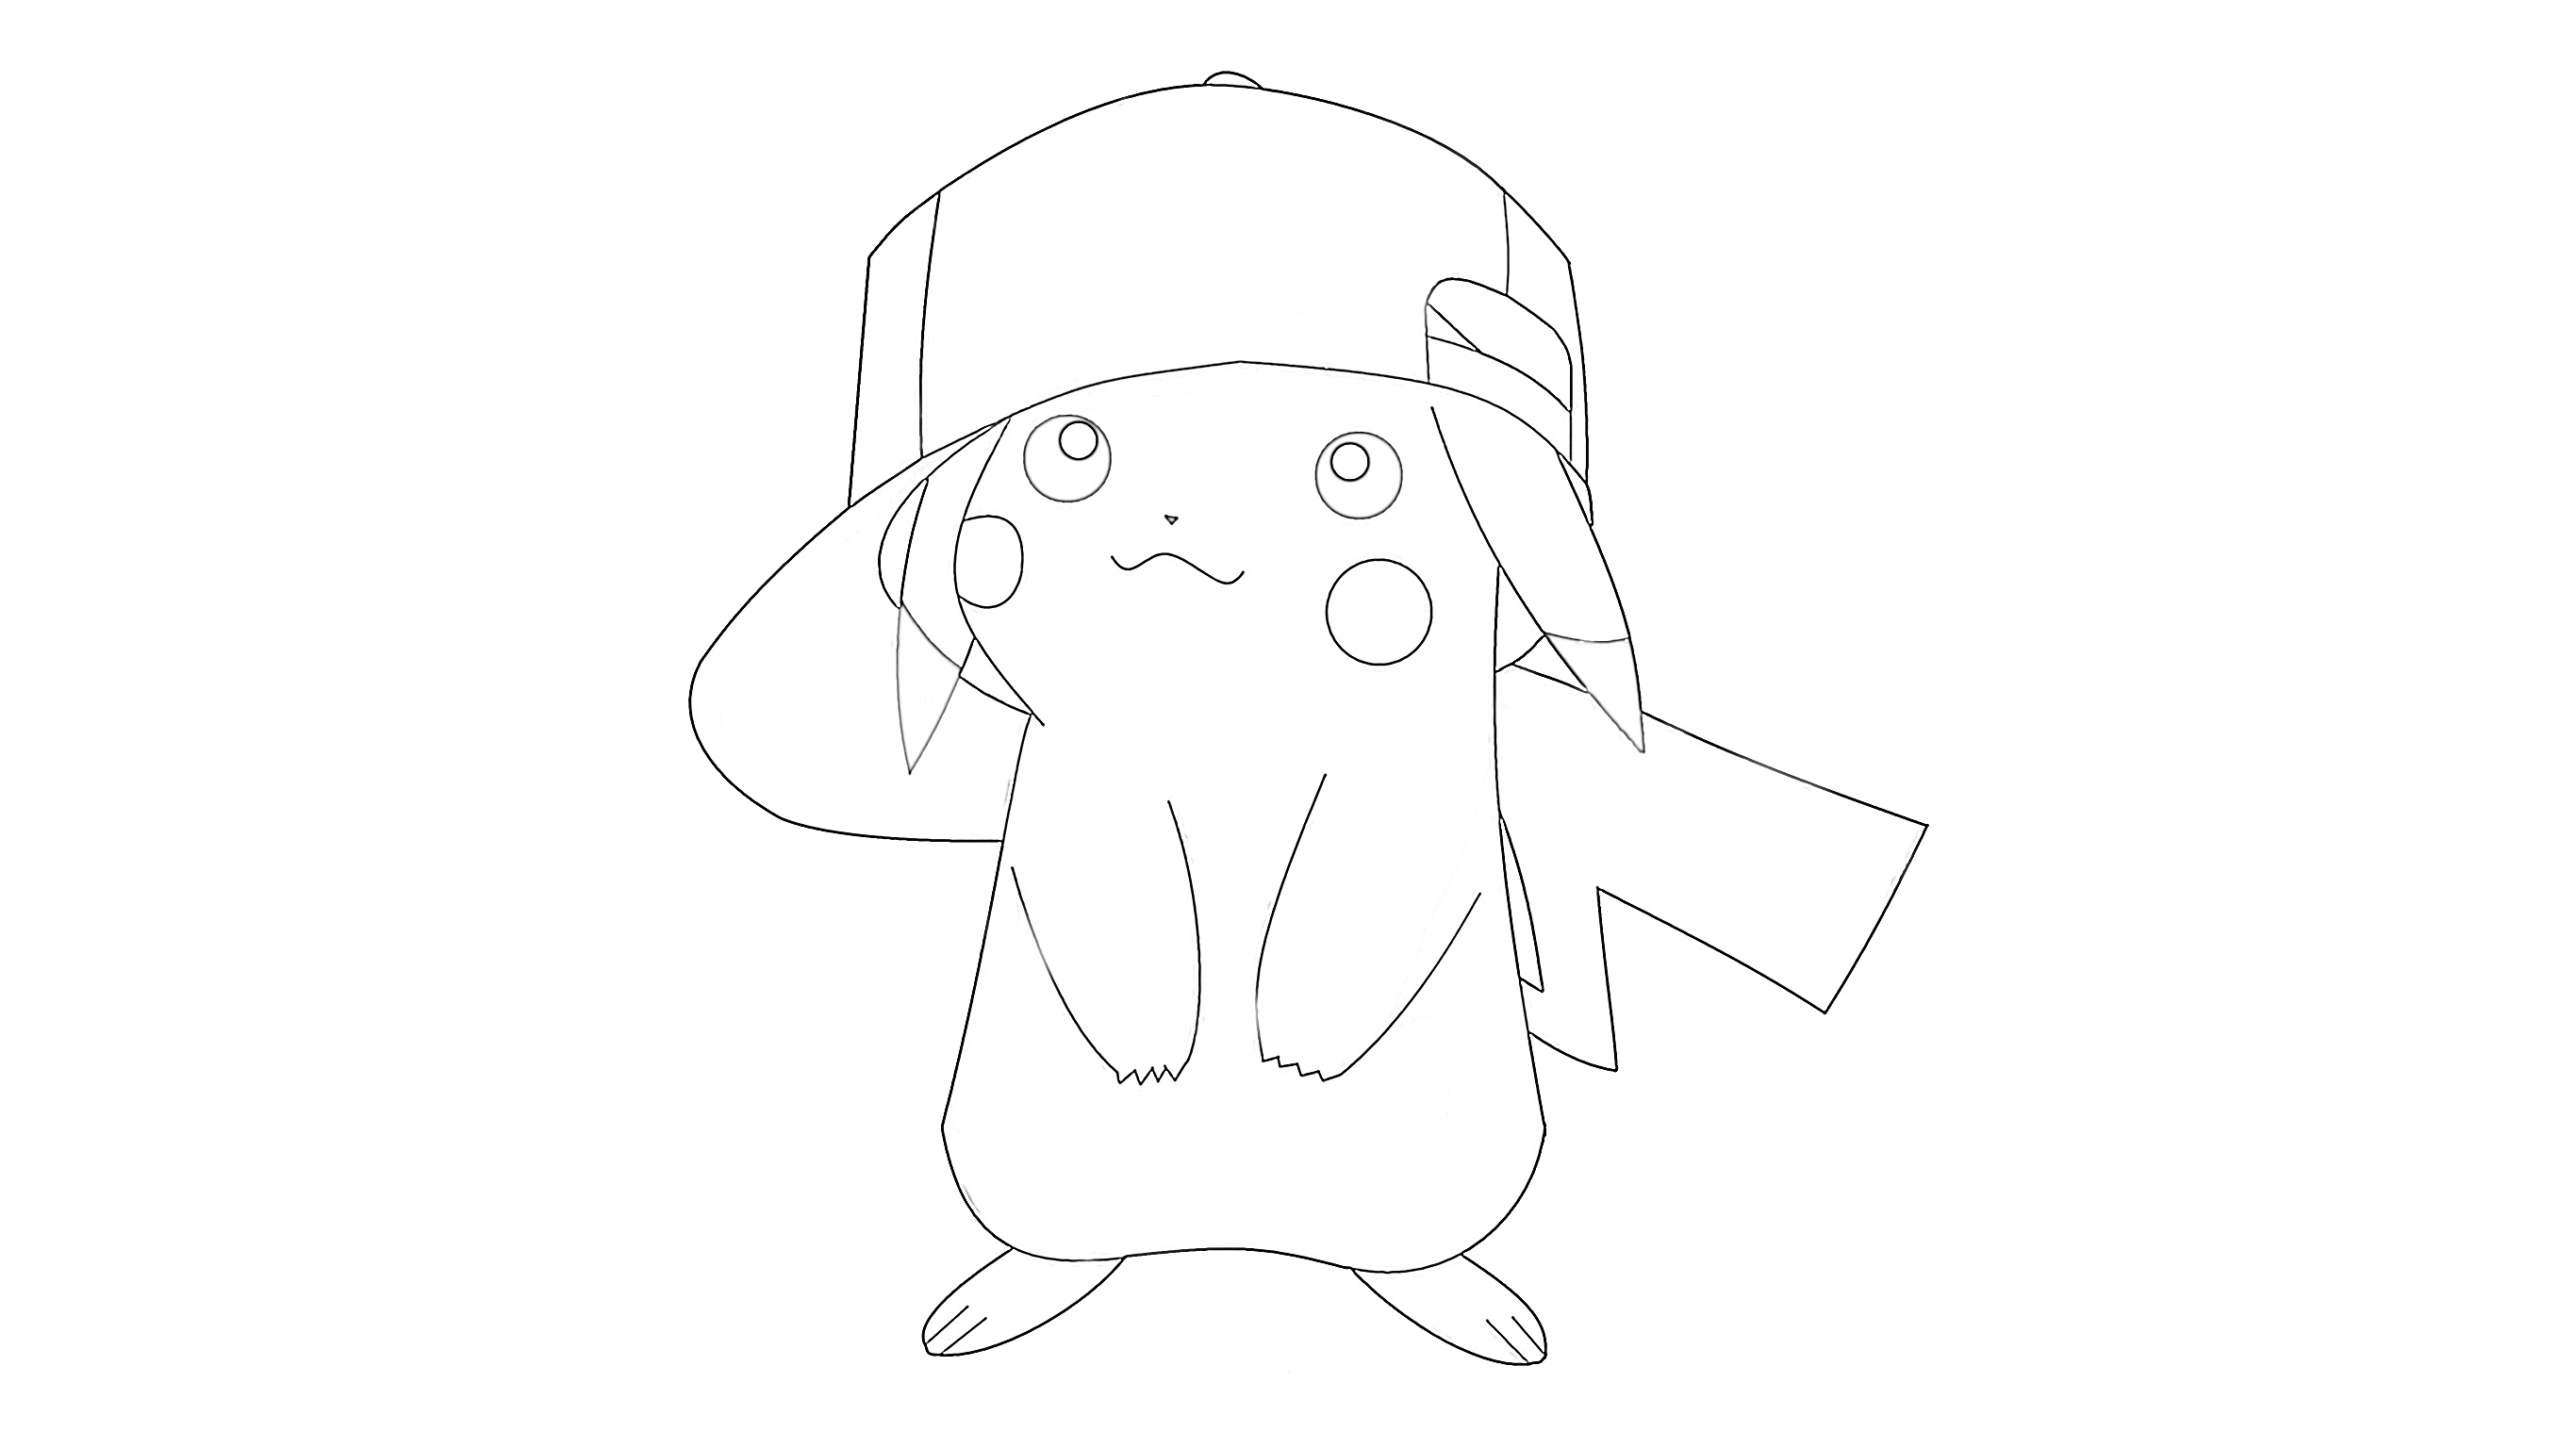 Pikachu wearing a hat coloring page